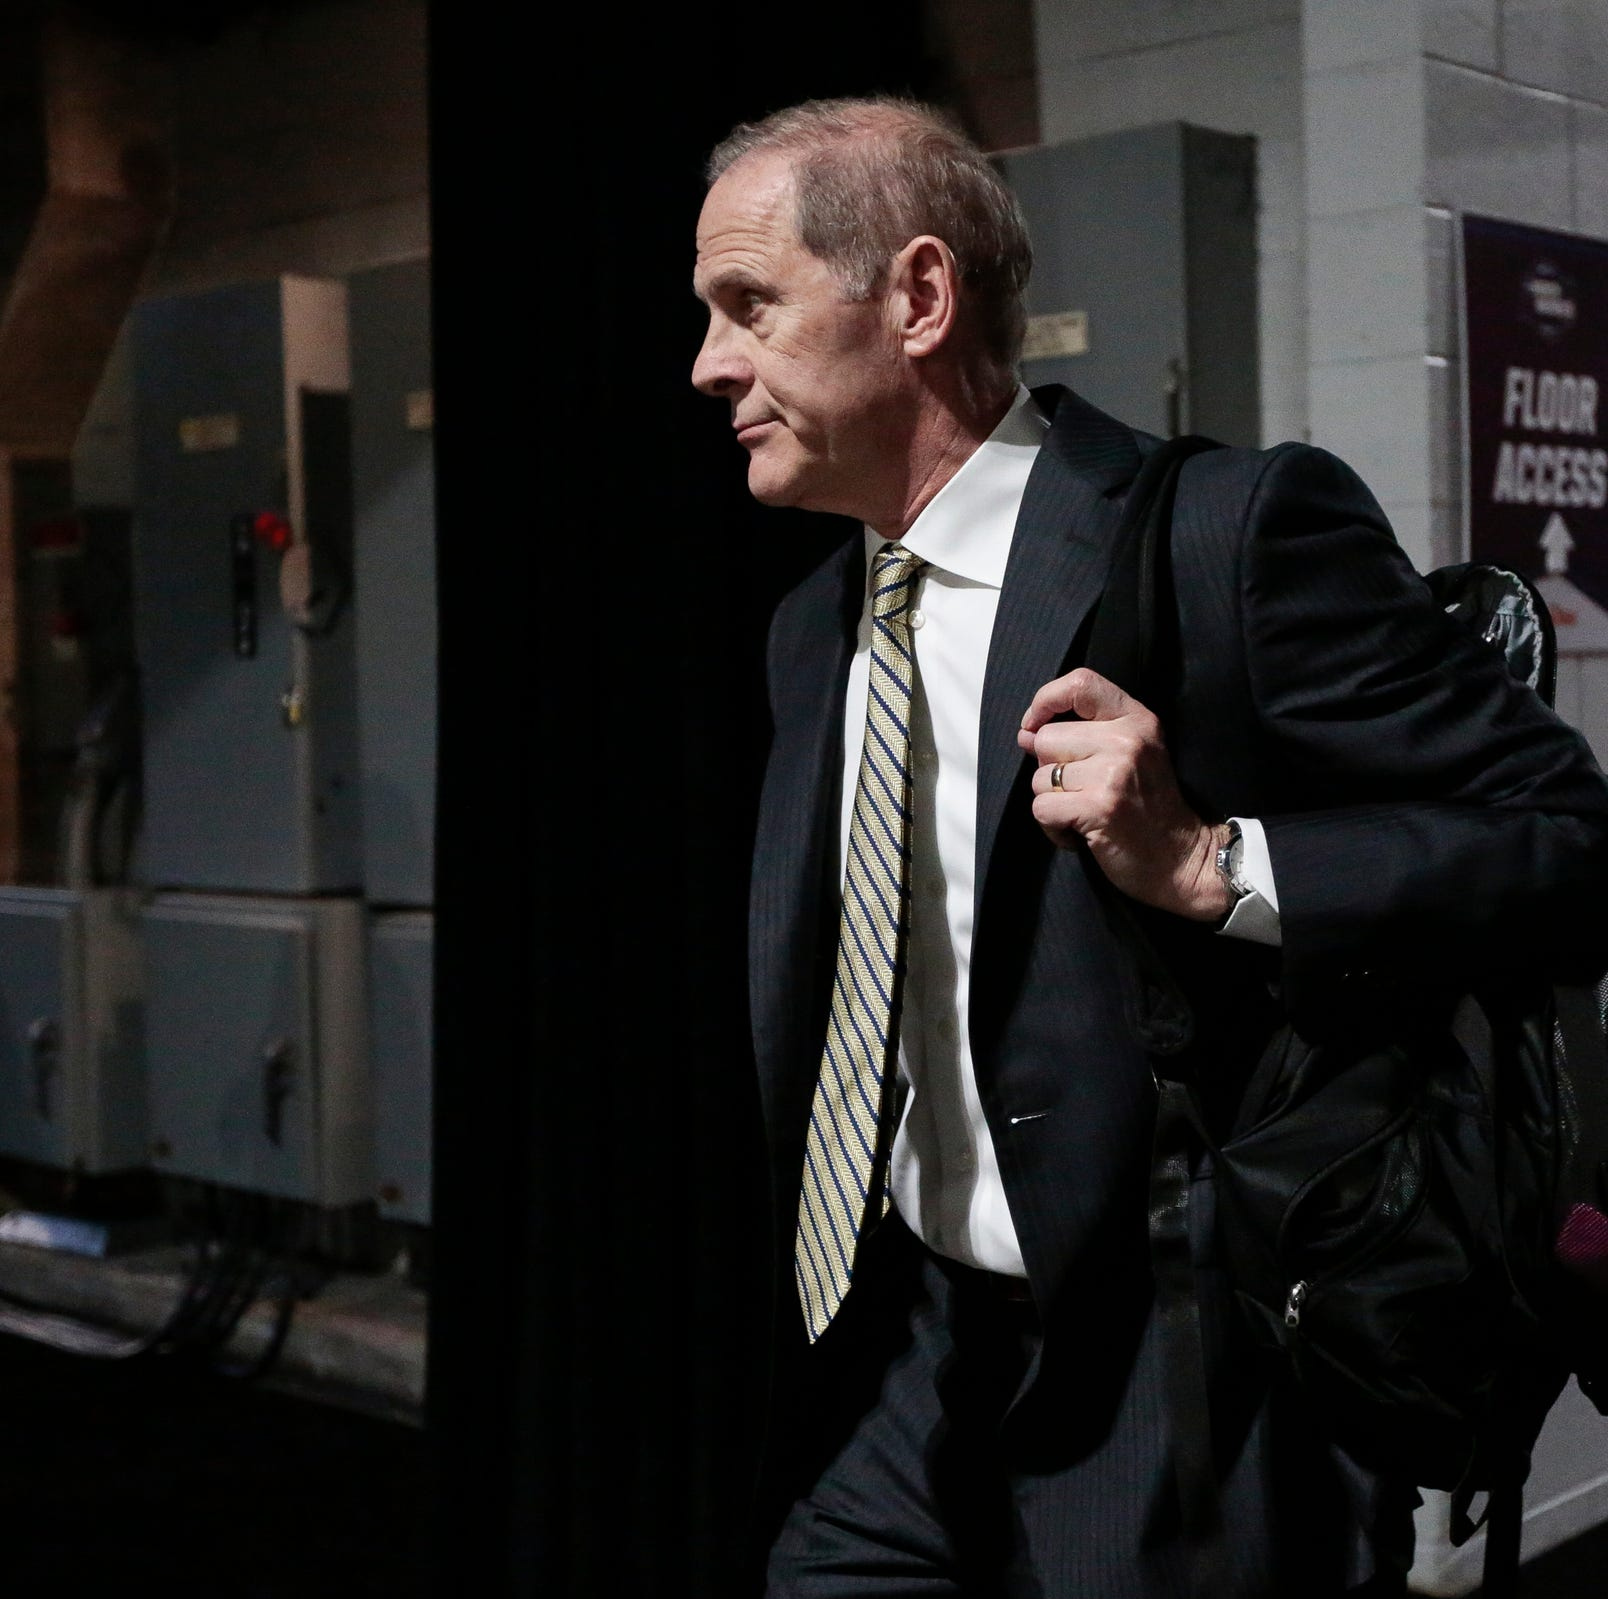 John Beilein leaving Michigan feels like a stunner. But it shouldn't